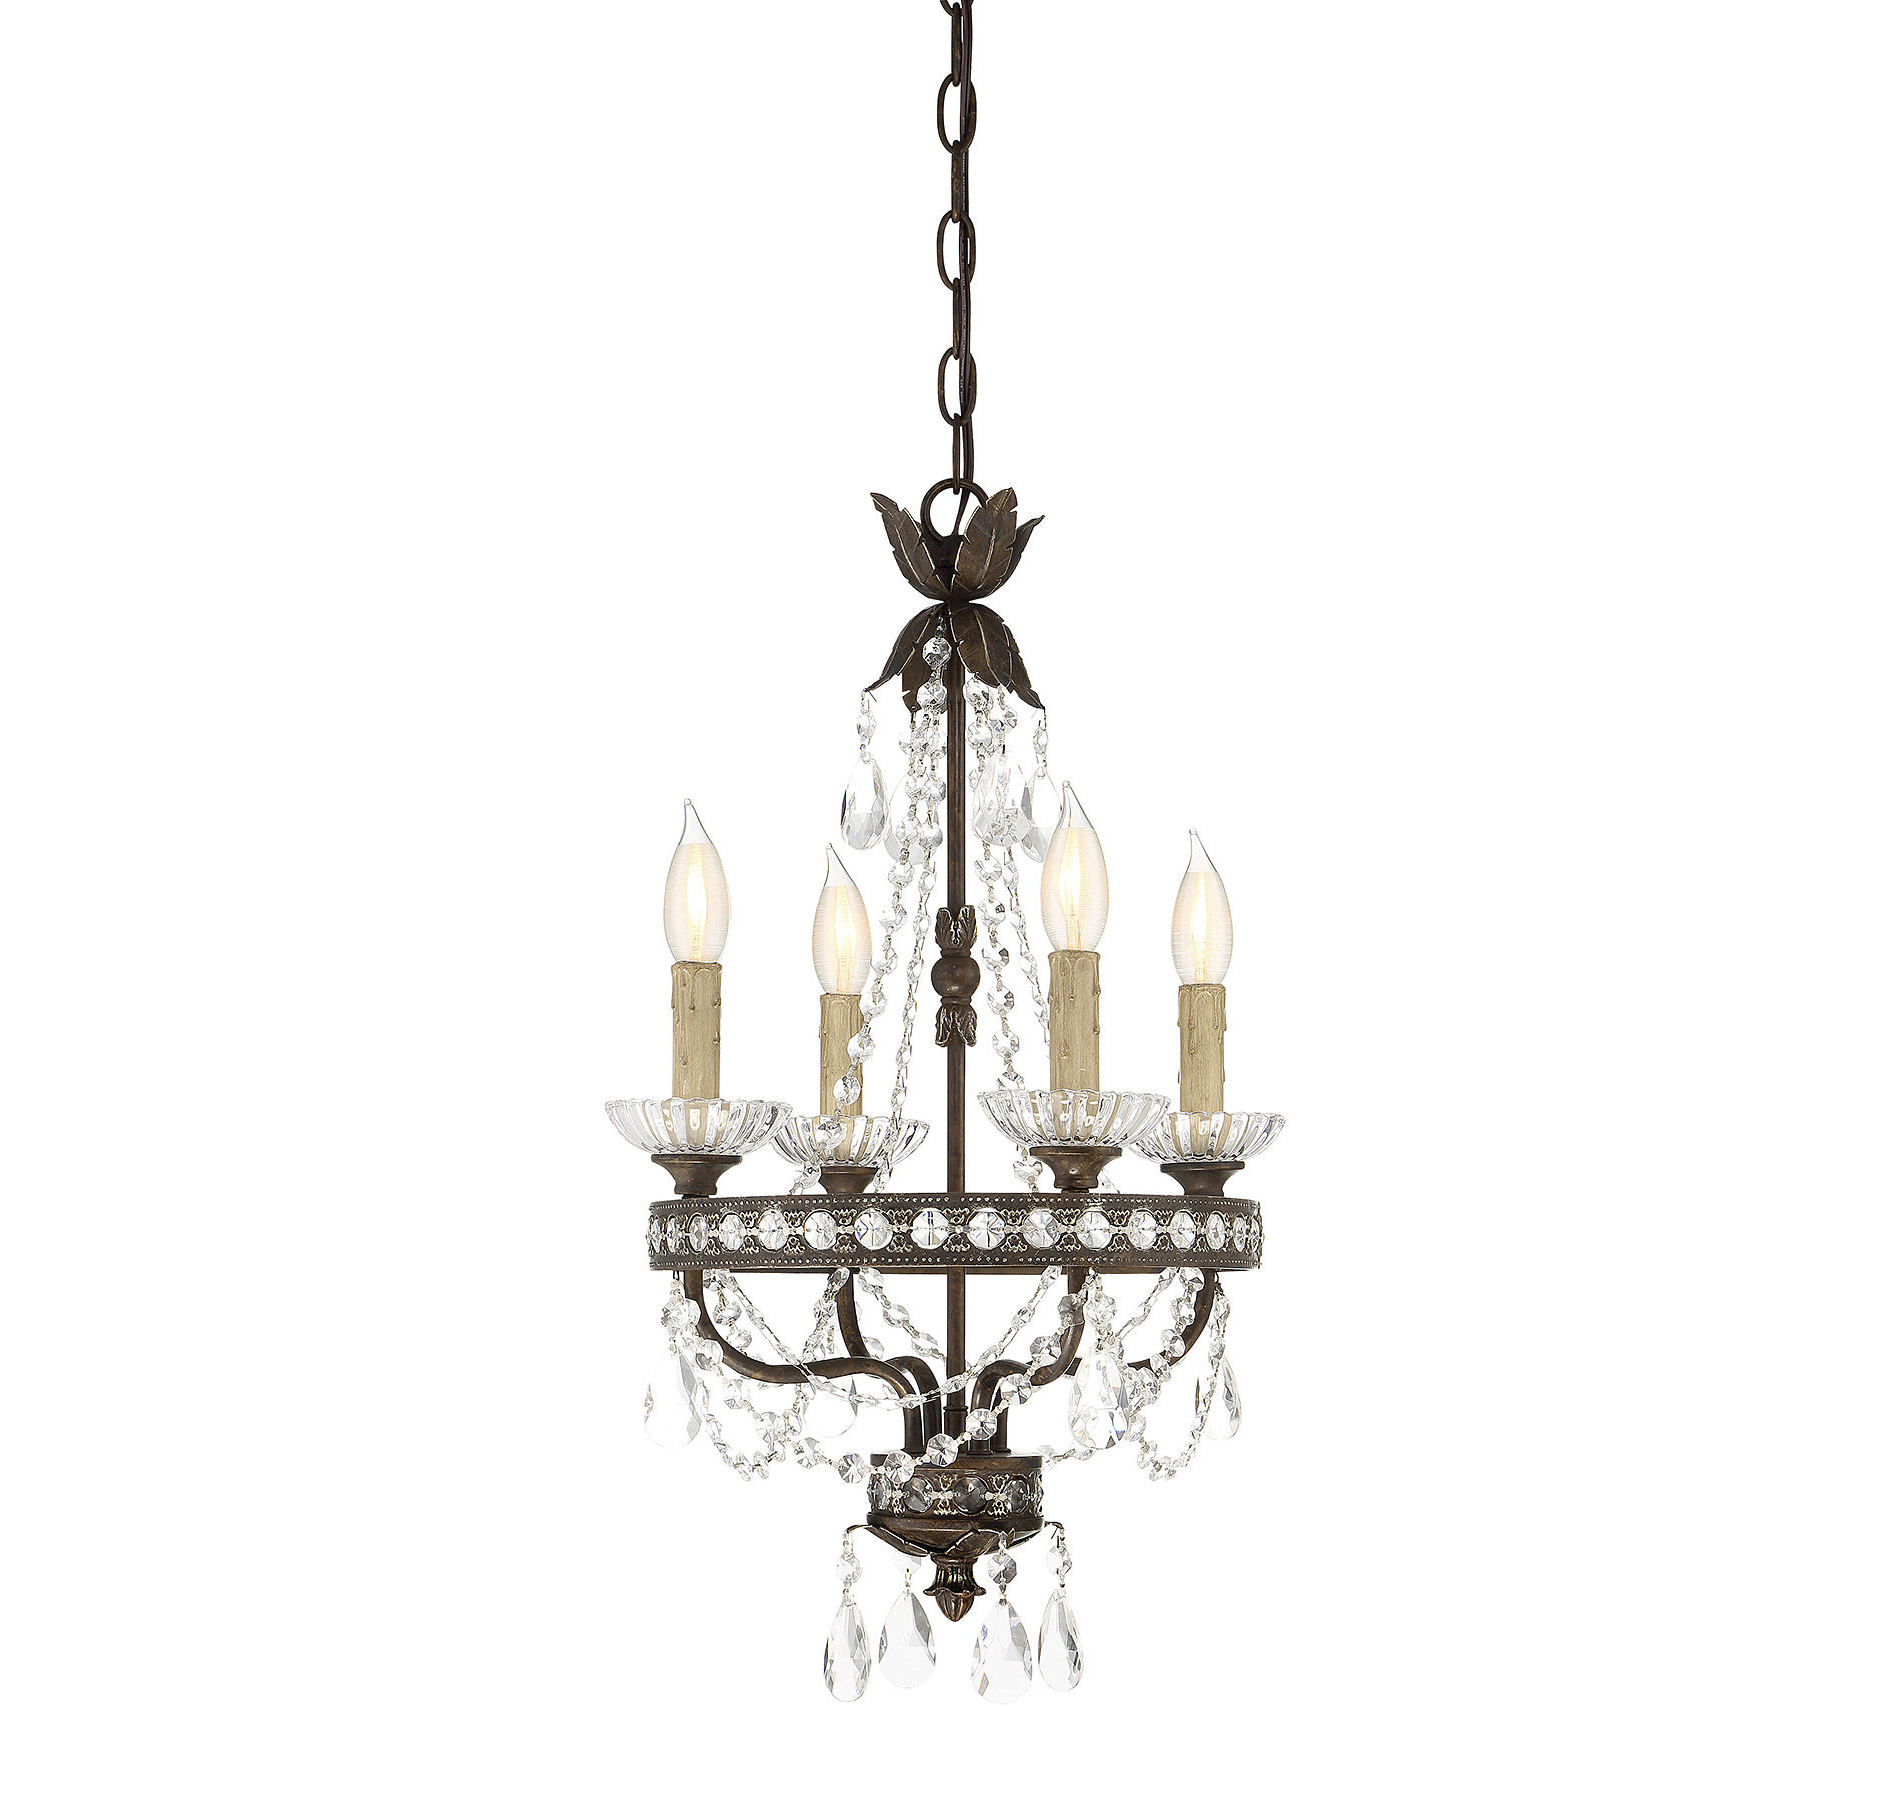 Hesse 5 Light Candle Style Chandeliers With Most Current Lefler 4 Light Candle Style Chandelier (View 12 of 20)